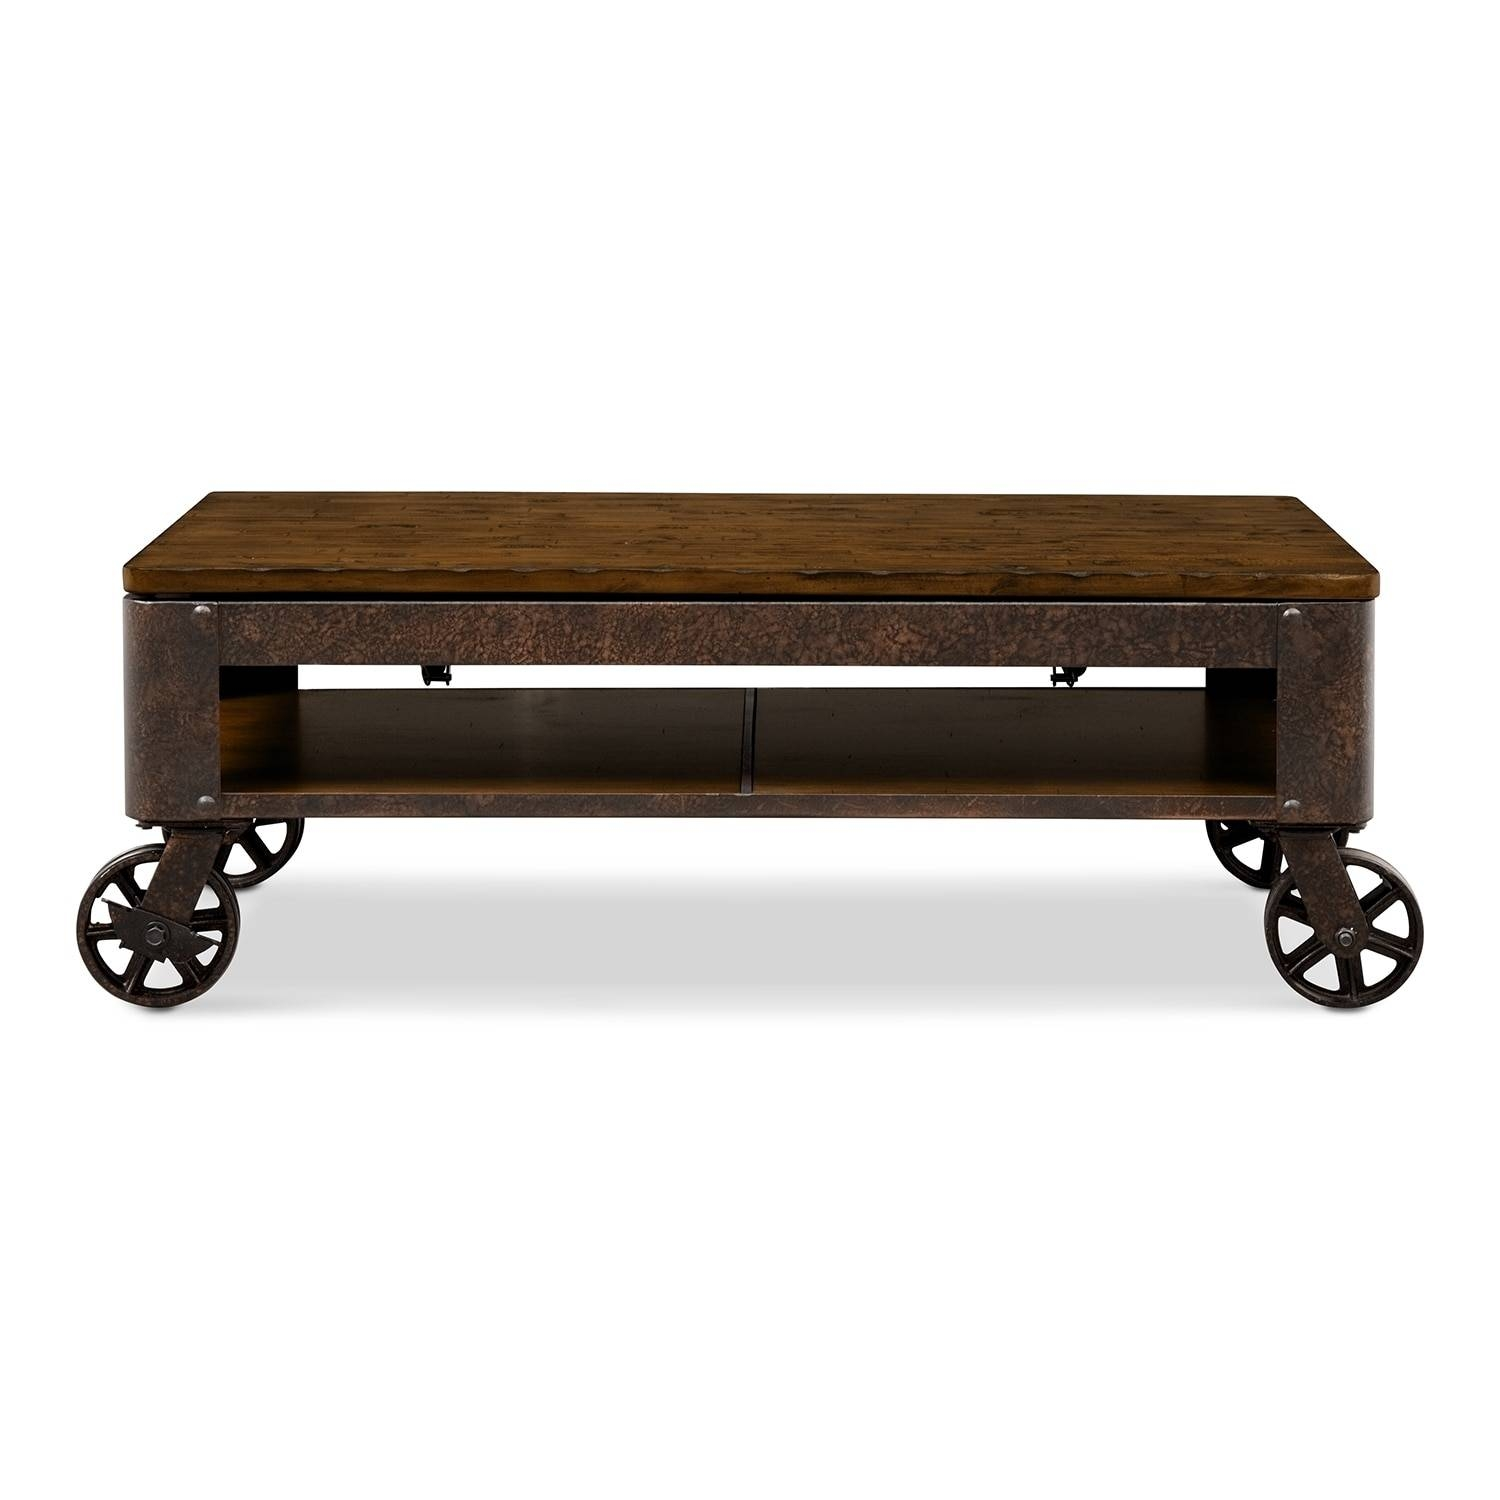 Coffee Tables | Living Room Tables | American Signature Furniture pertaining to Lift Top Coffee Table Furniture (Image 9 of 30)